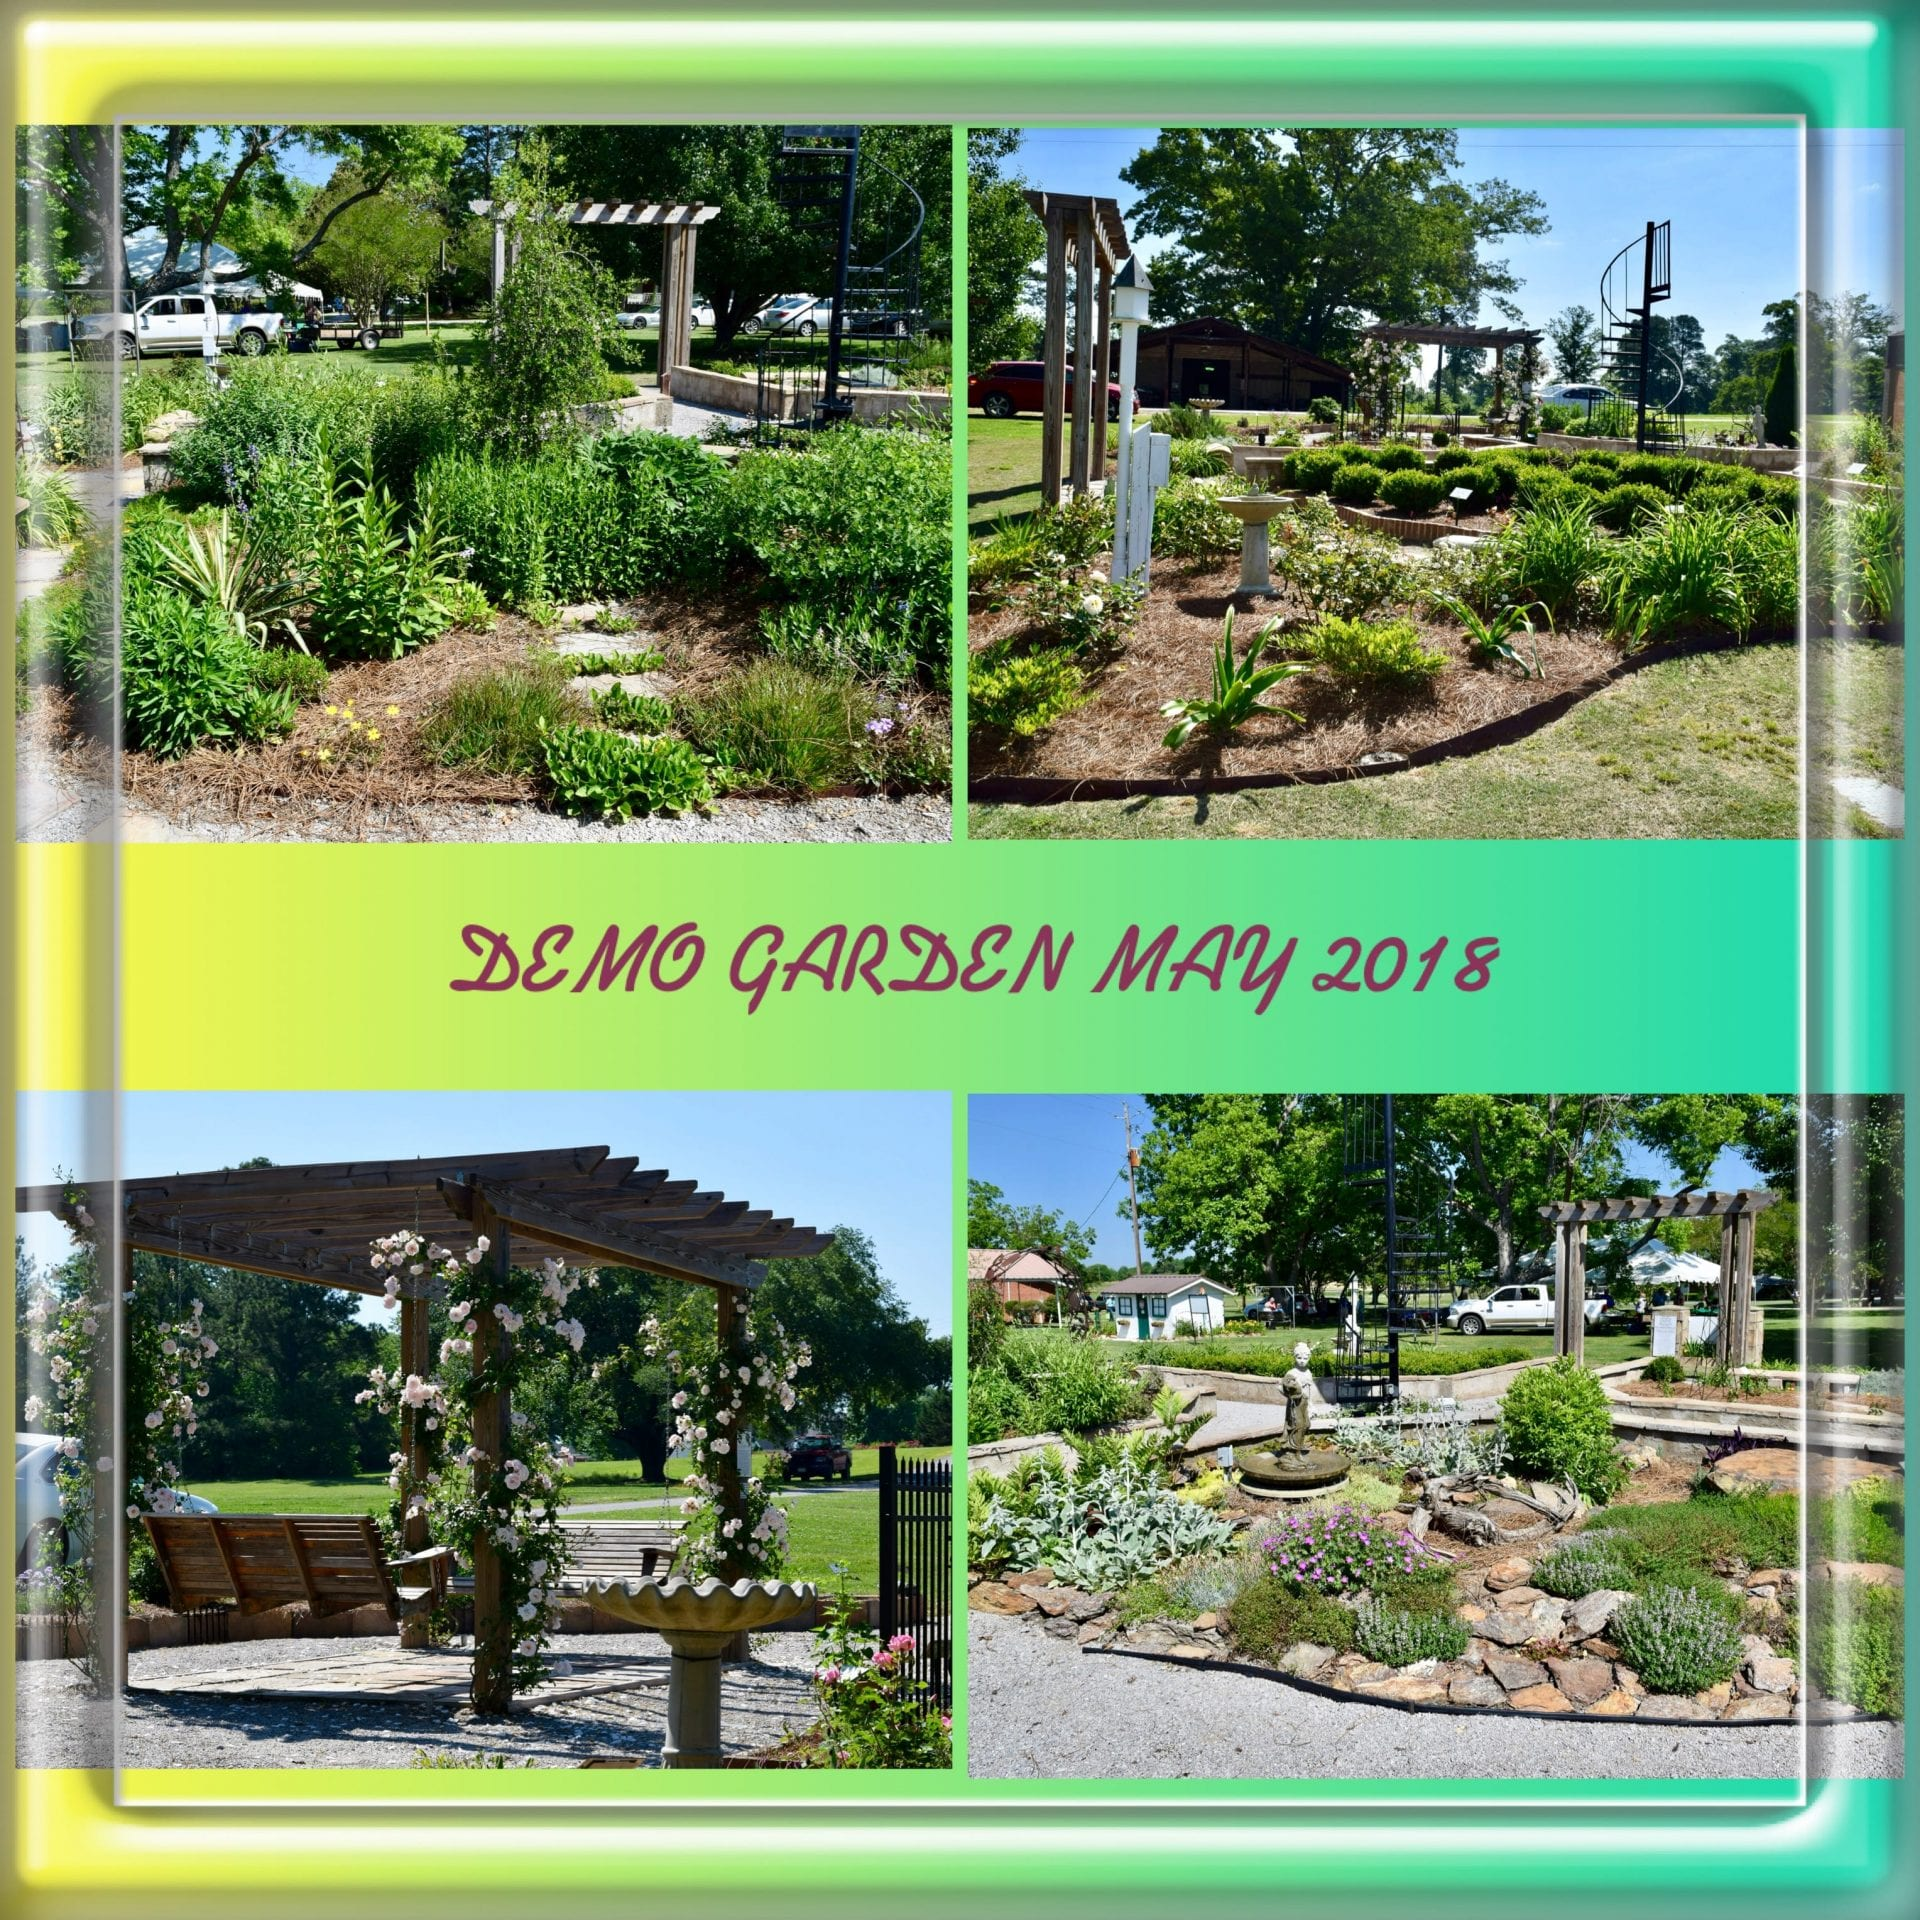 Photo of Demo Garden